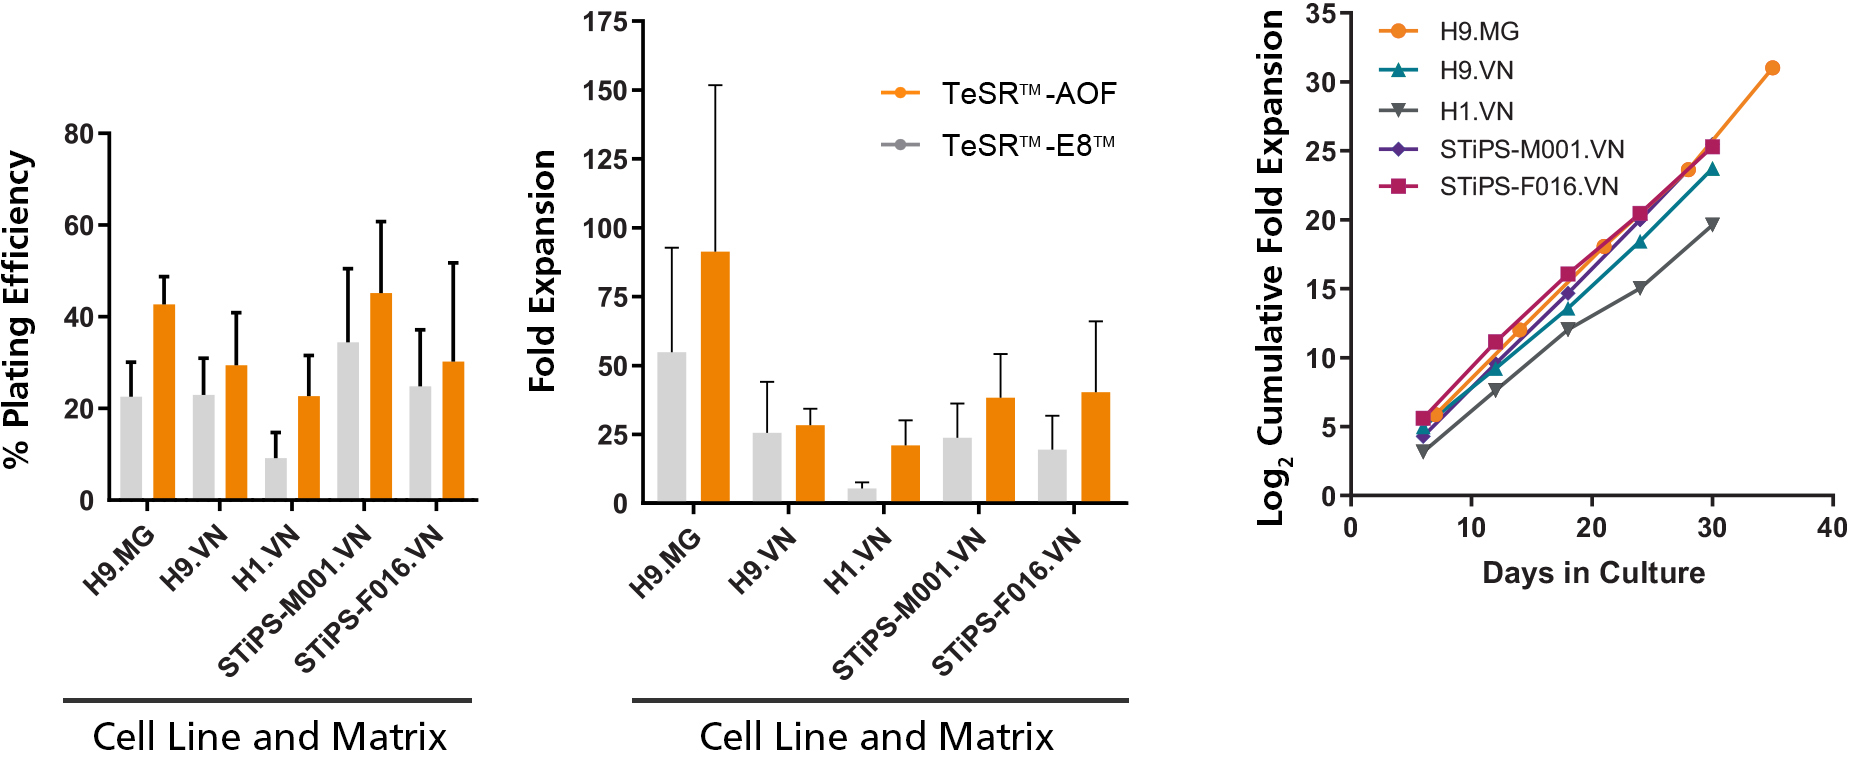 hPSCs Maintained in TeSR™-AOF Have Improved Attachment and Higher Overall Expansion Compared to Low-Protein Medium